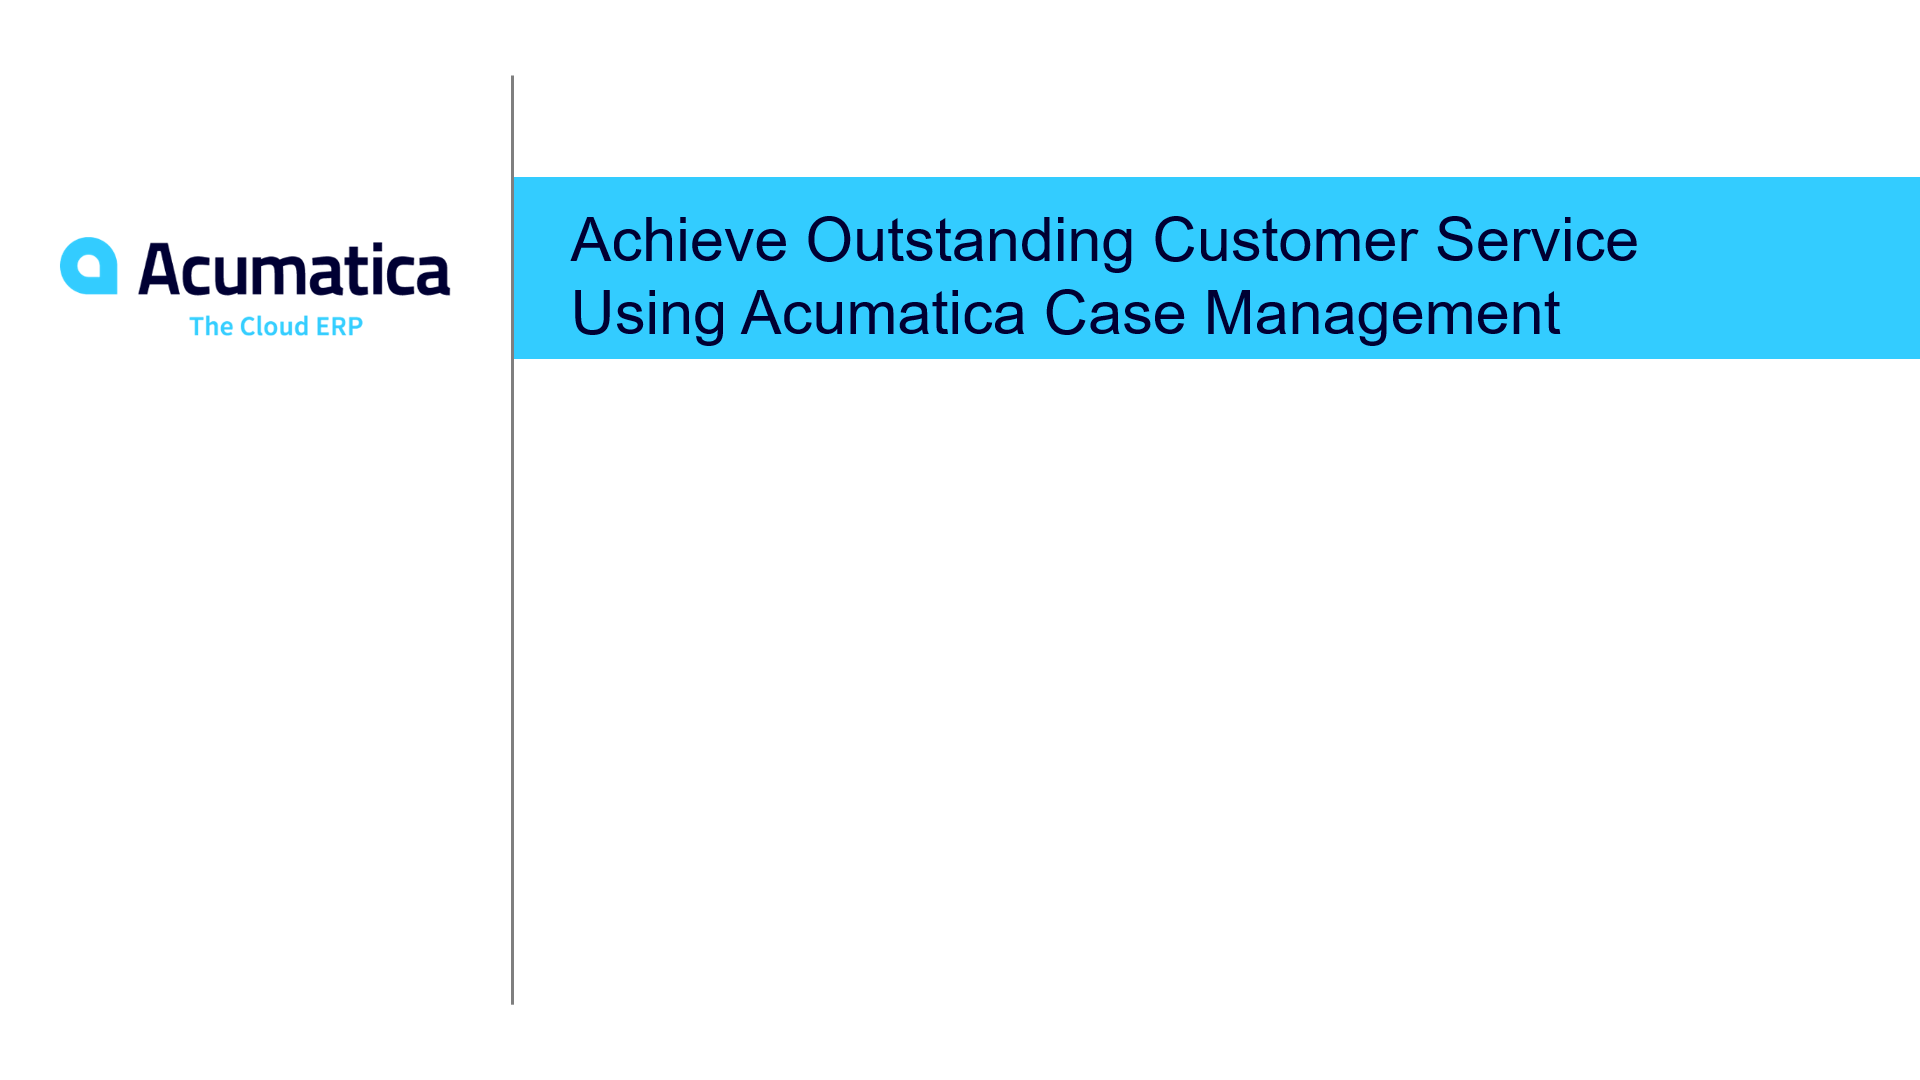 Achieve Outstanding Customer Service Using Acumatica Case Management